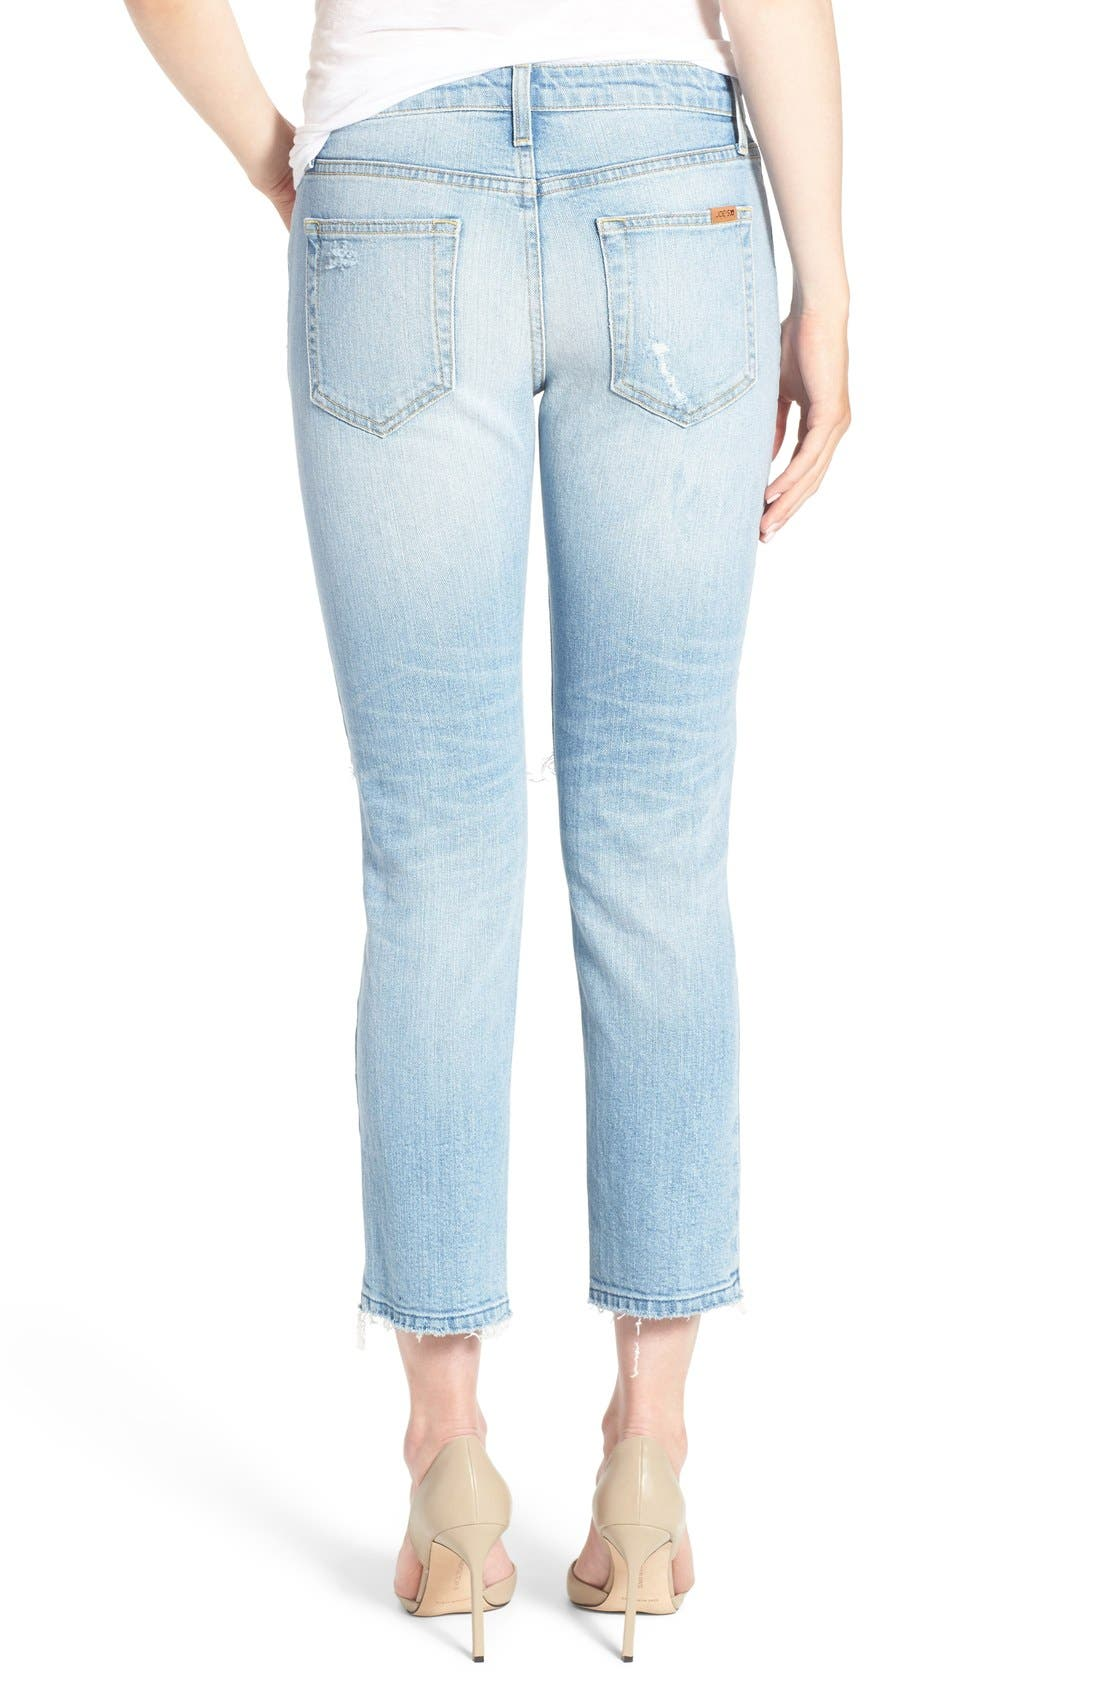 JOE'S,                             'Ex-Lover' Crop Straight Leg Boyfriend Jeans,                             Alternate thumbnail 5, color,                             430